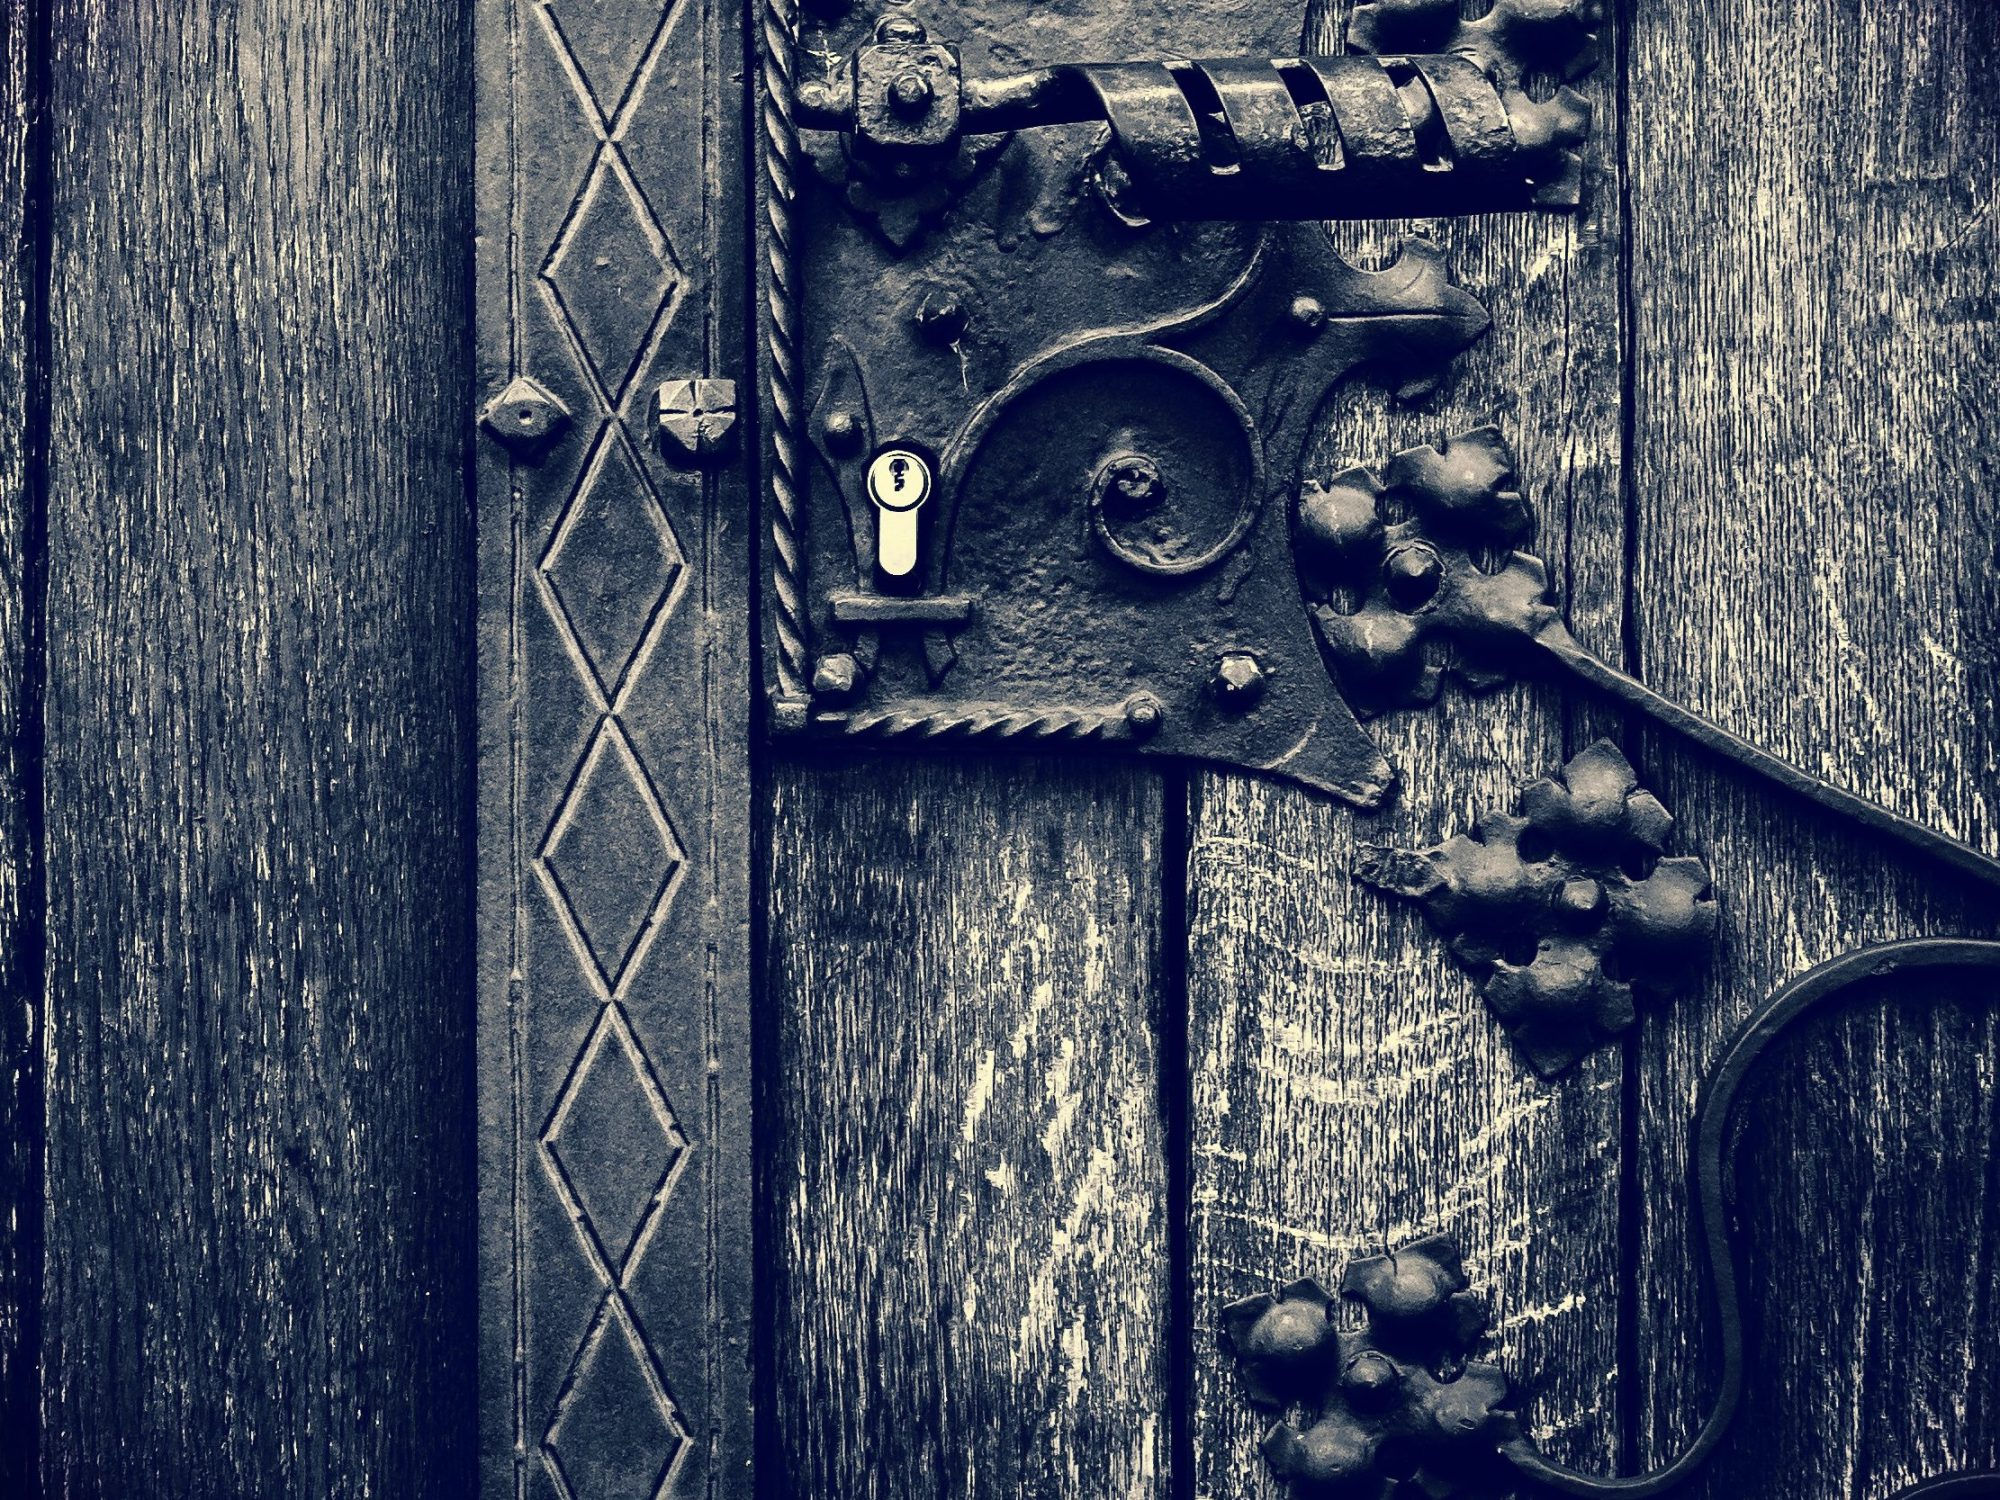 magda szabo the door epub